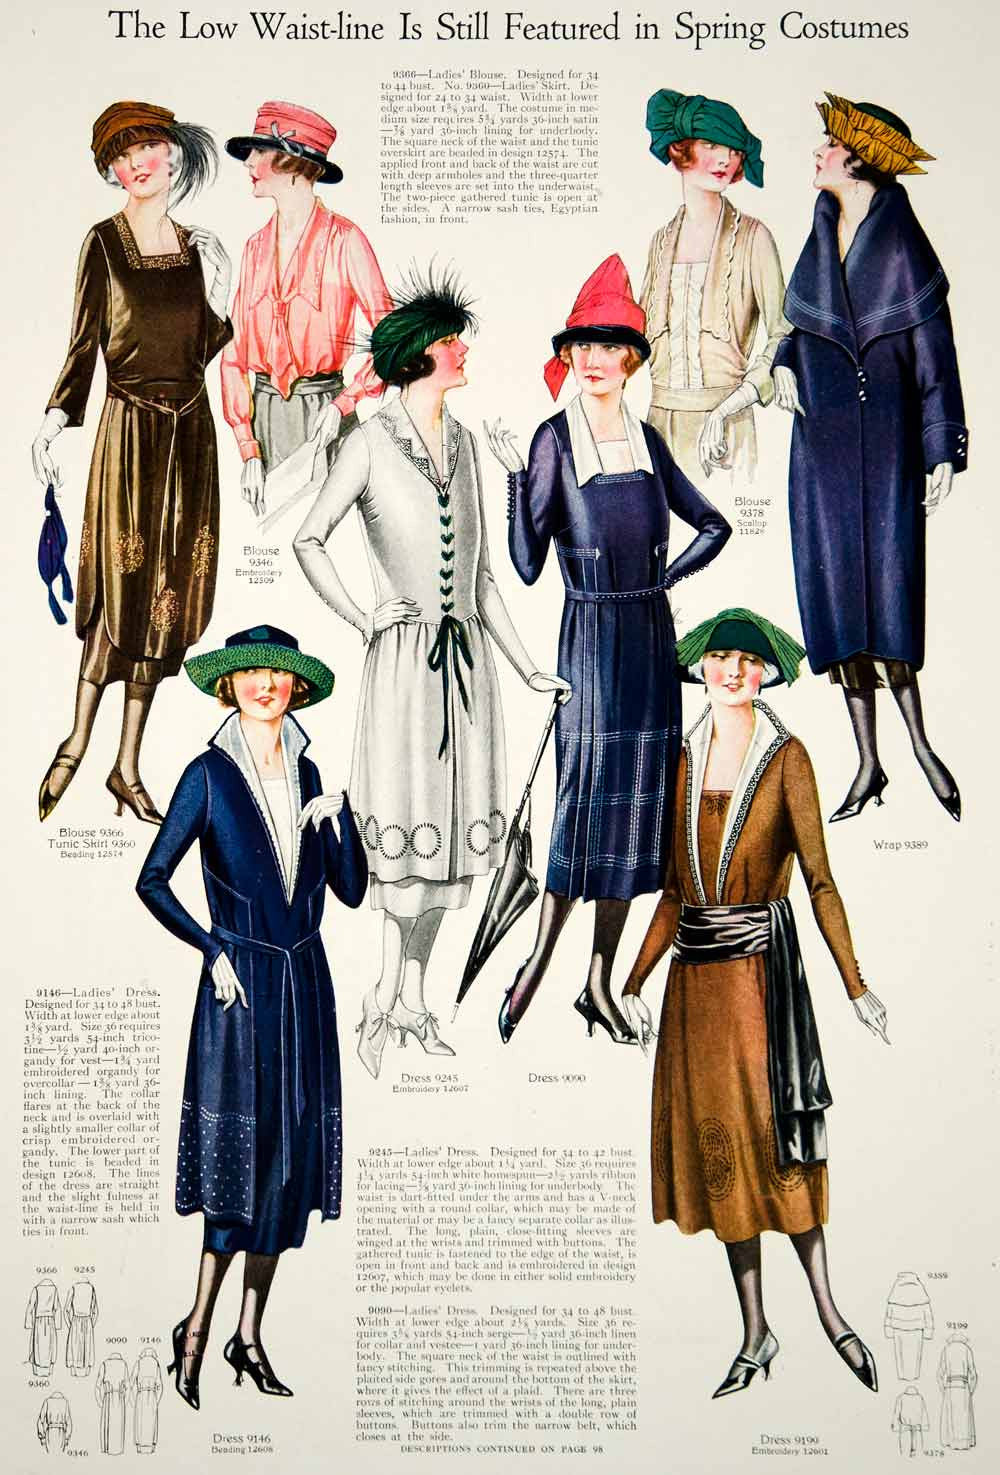 1921 Print Flapper Era Fashion Illustrations Women Spring Dresses Turban Hats - Period Paper  - 1